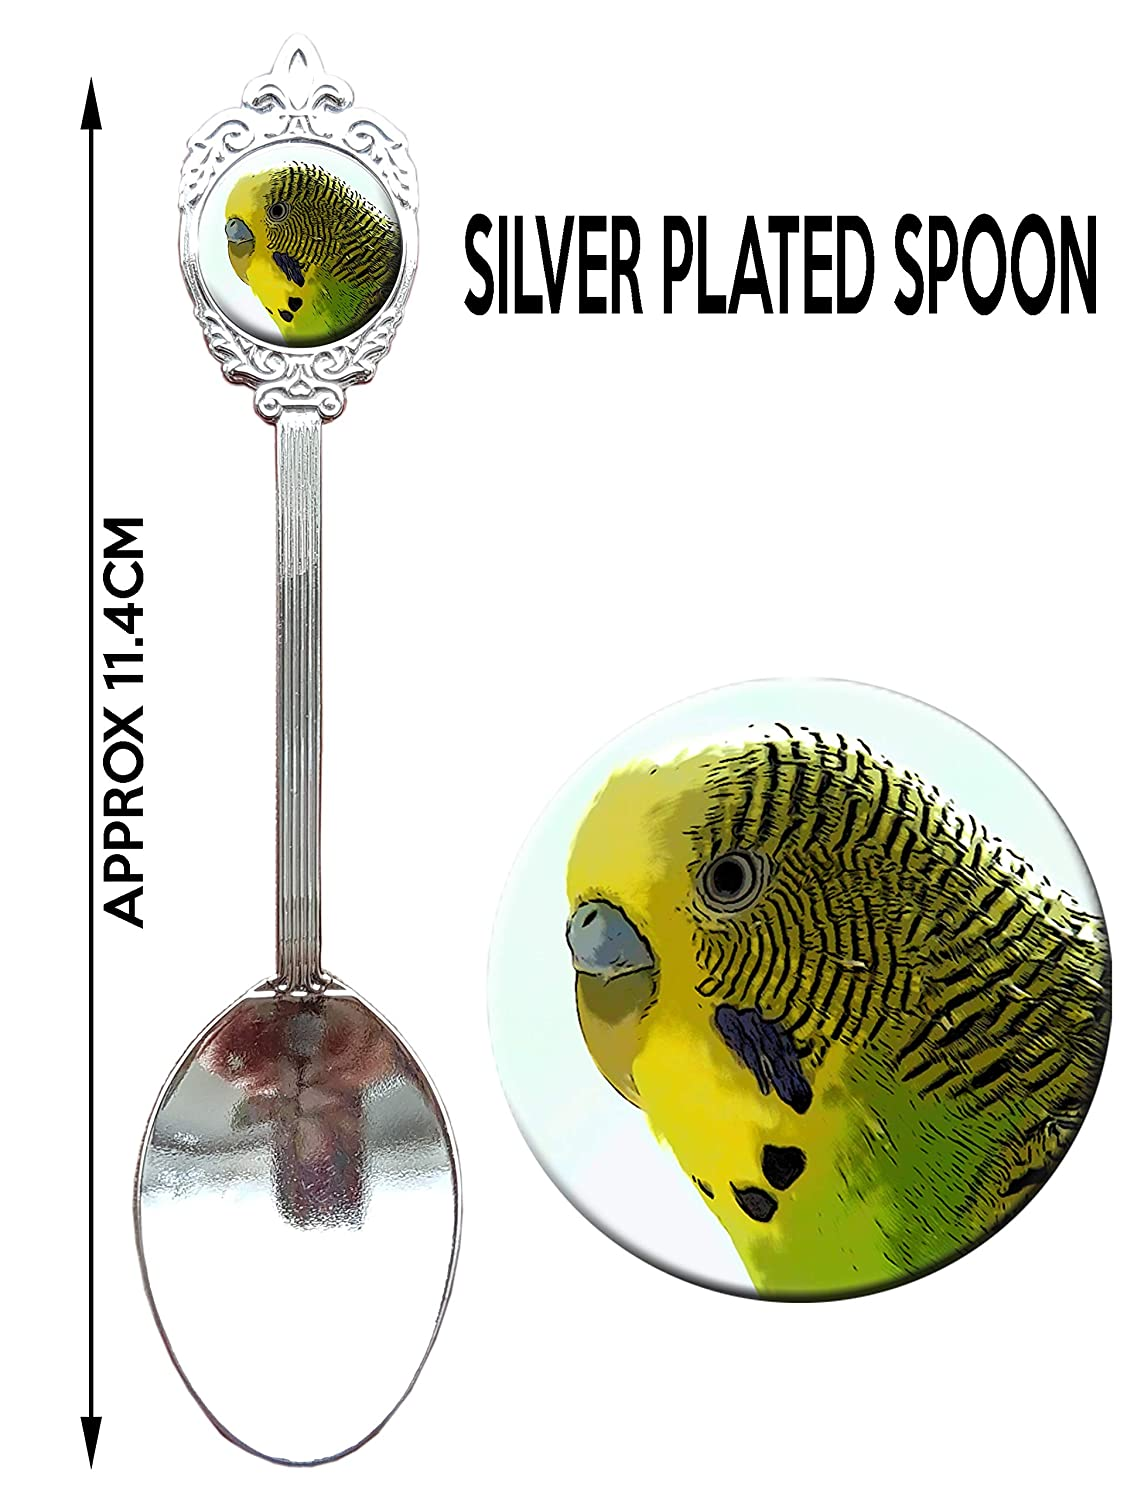 Aviary Bird Parrot Gift. Green Budgie Budgerigar Gift Silver Plated Collectors Souvenir Spoon